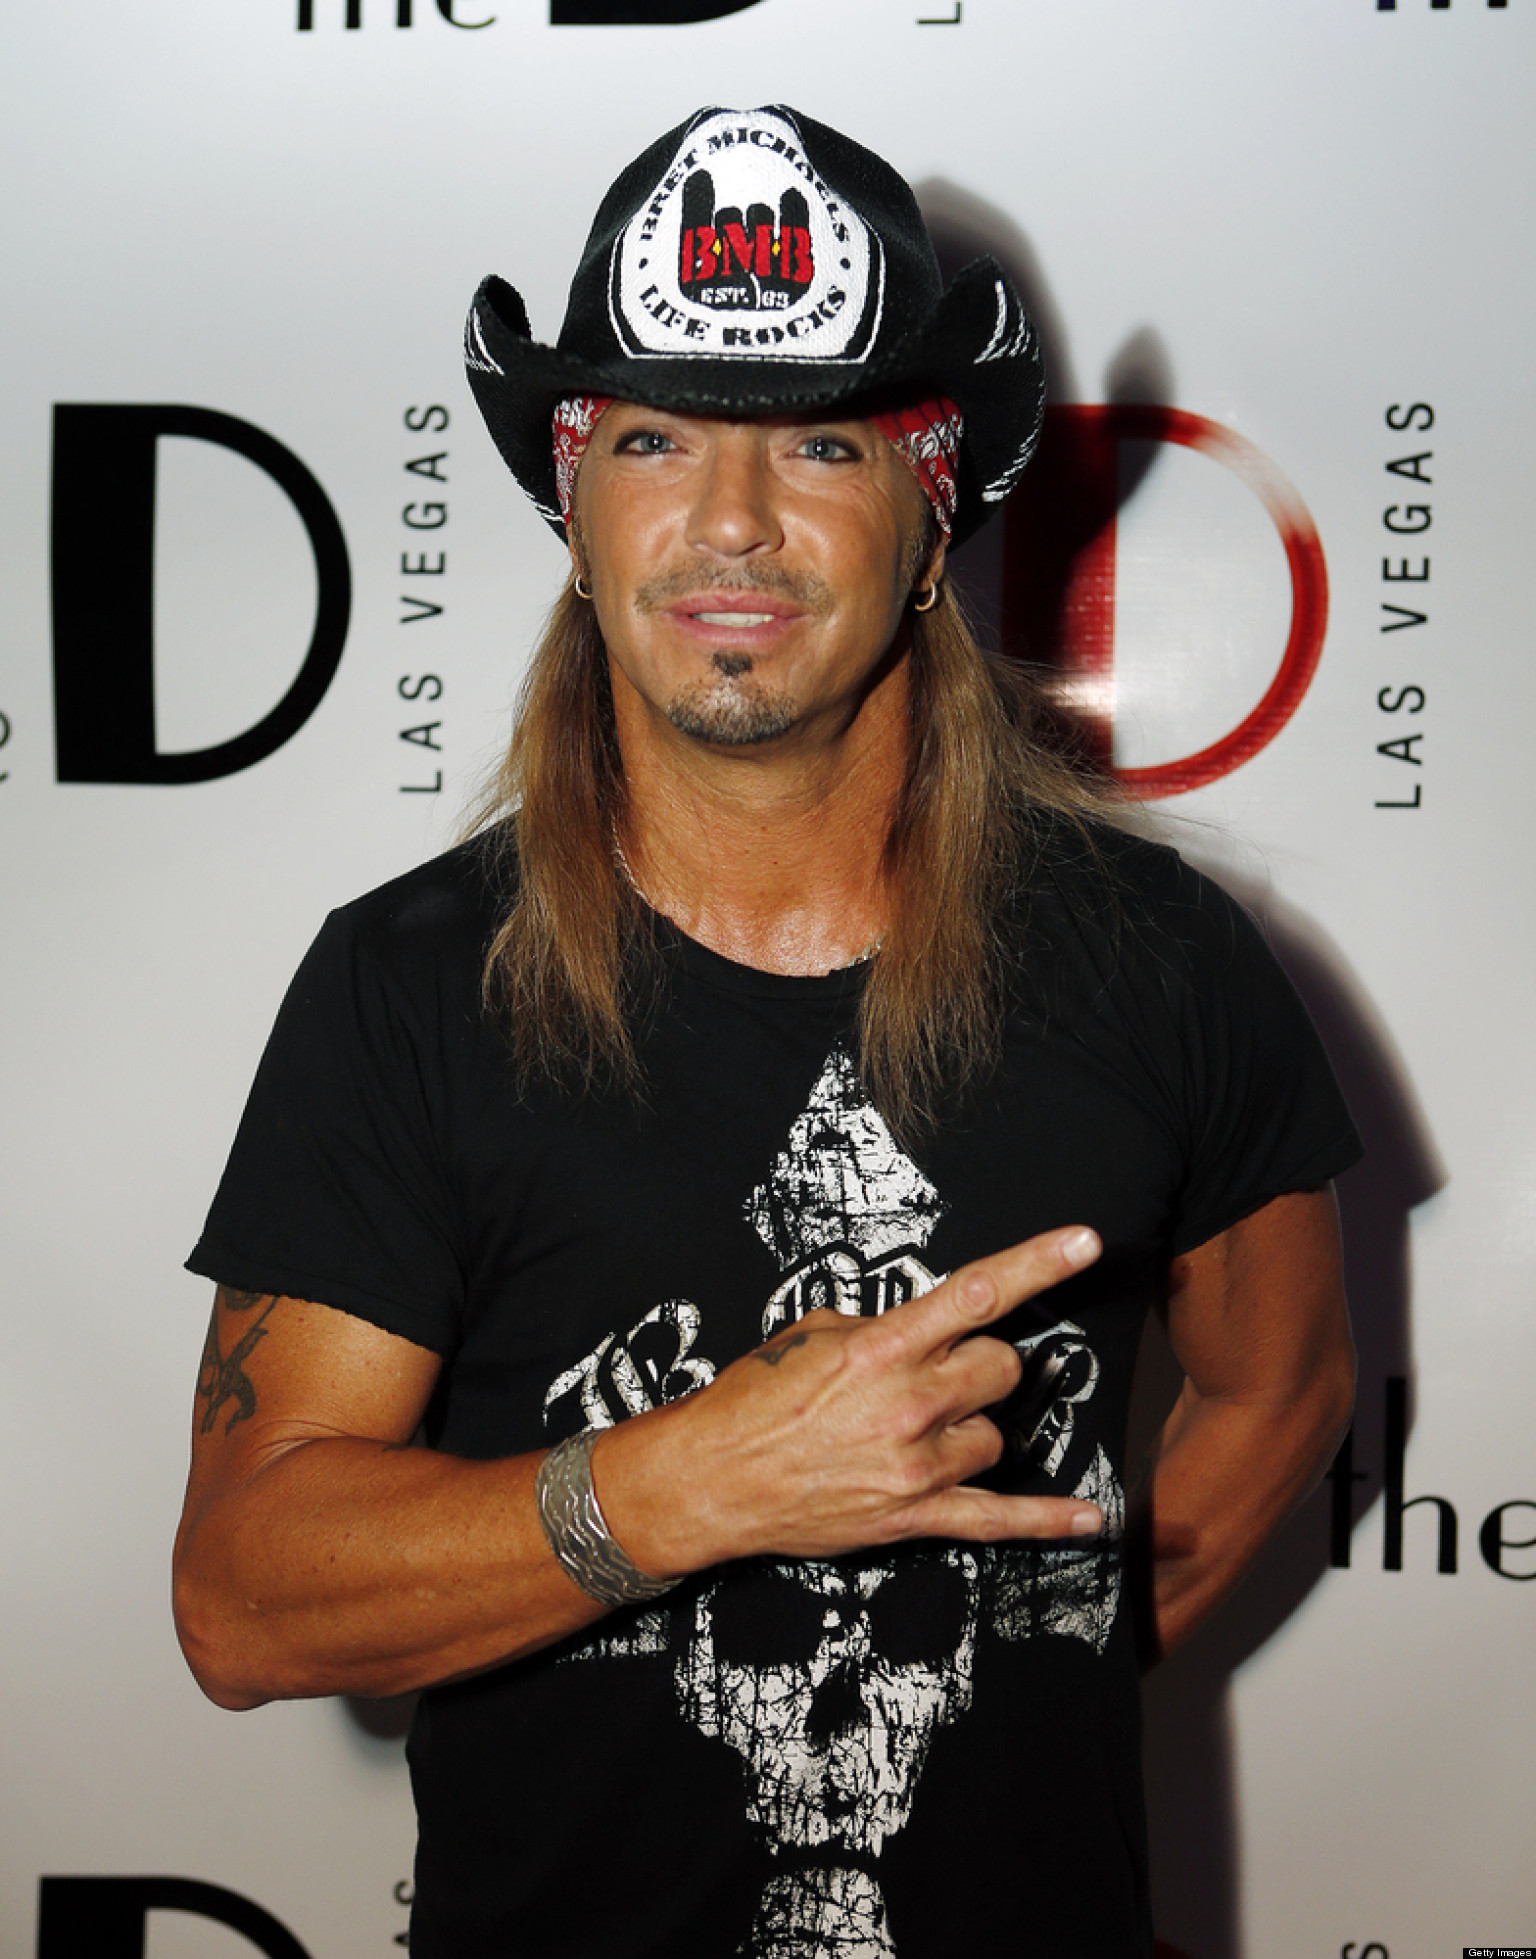 Is Bret Michaels Married Awesome bret michaels on charlie sheen: rocker recounts destroying hotel